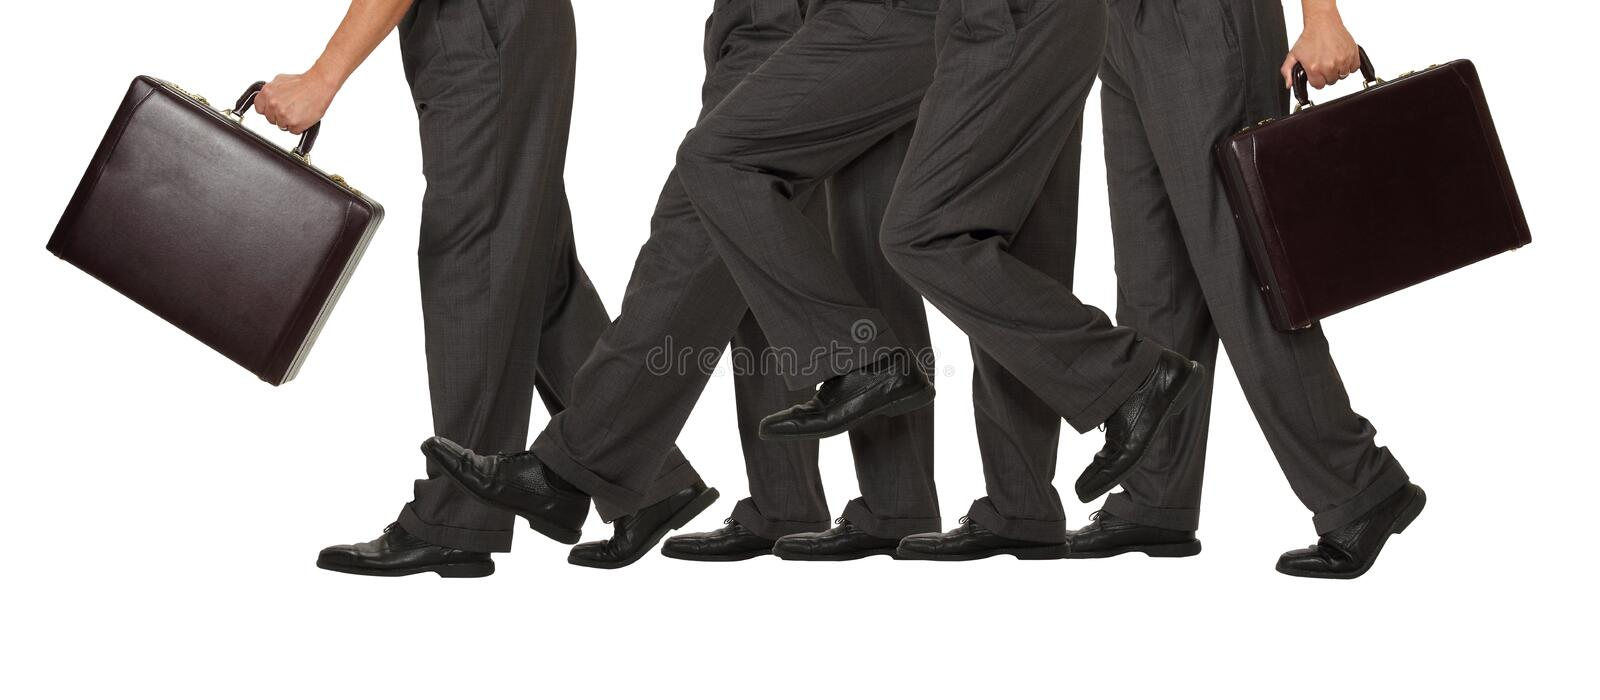 Download Business Progress Of One Step Advancement Stock Photo - Image of motion, health: 27976812